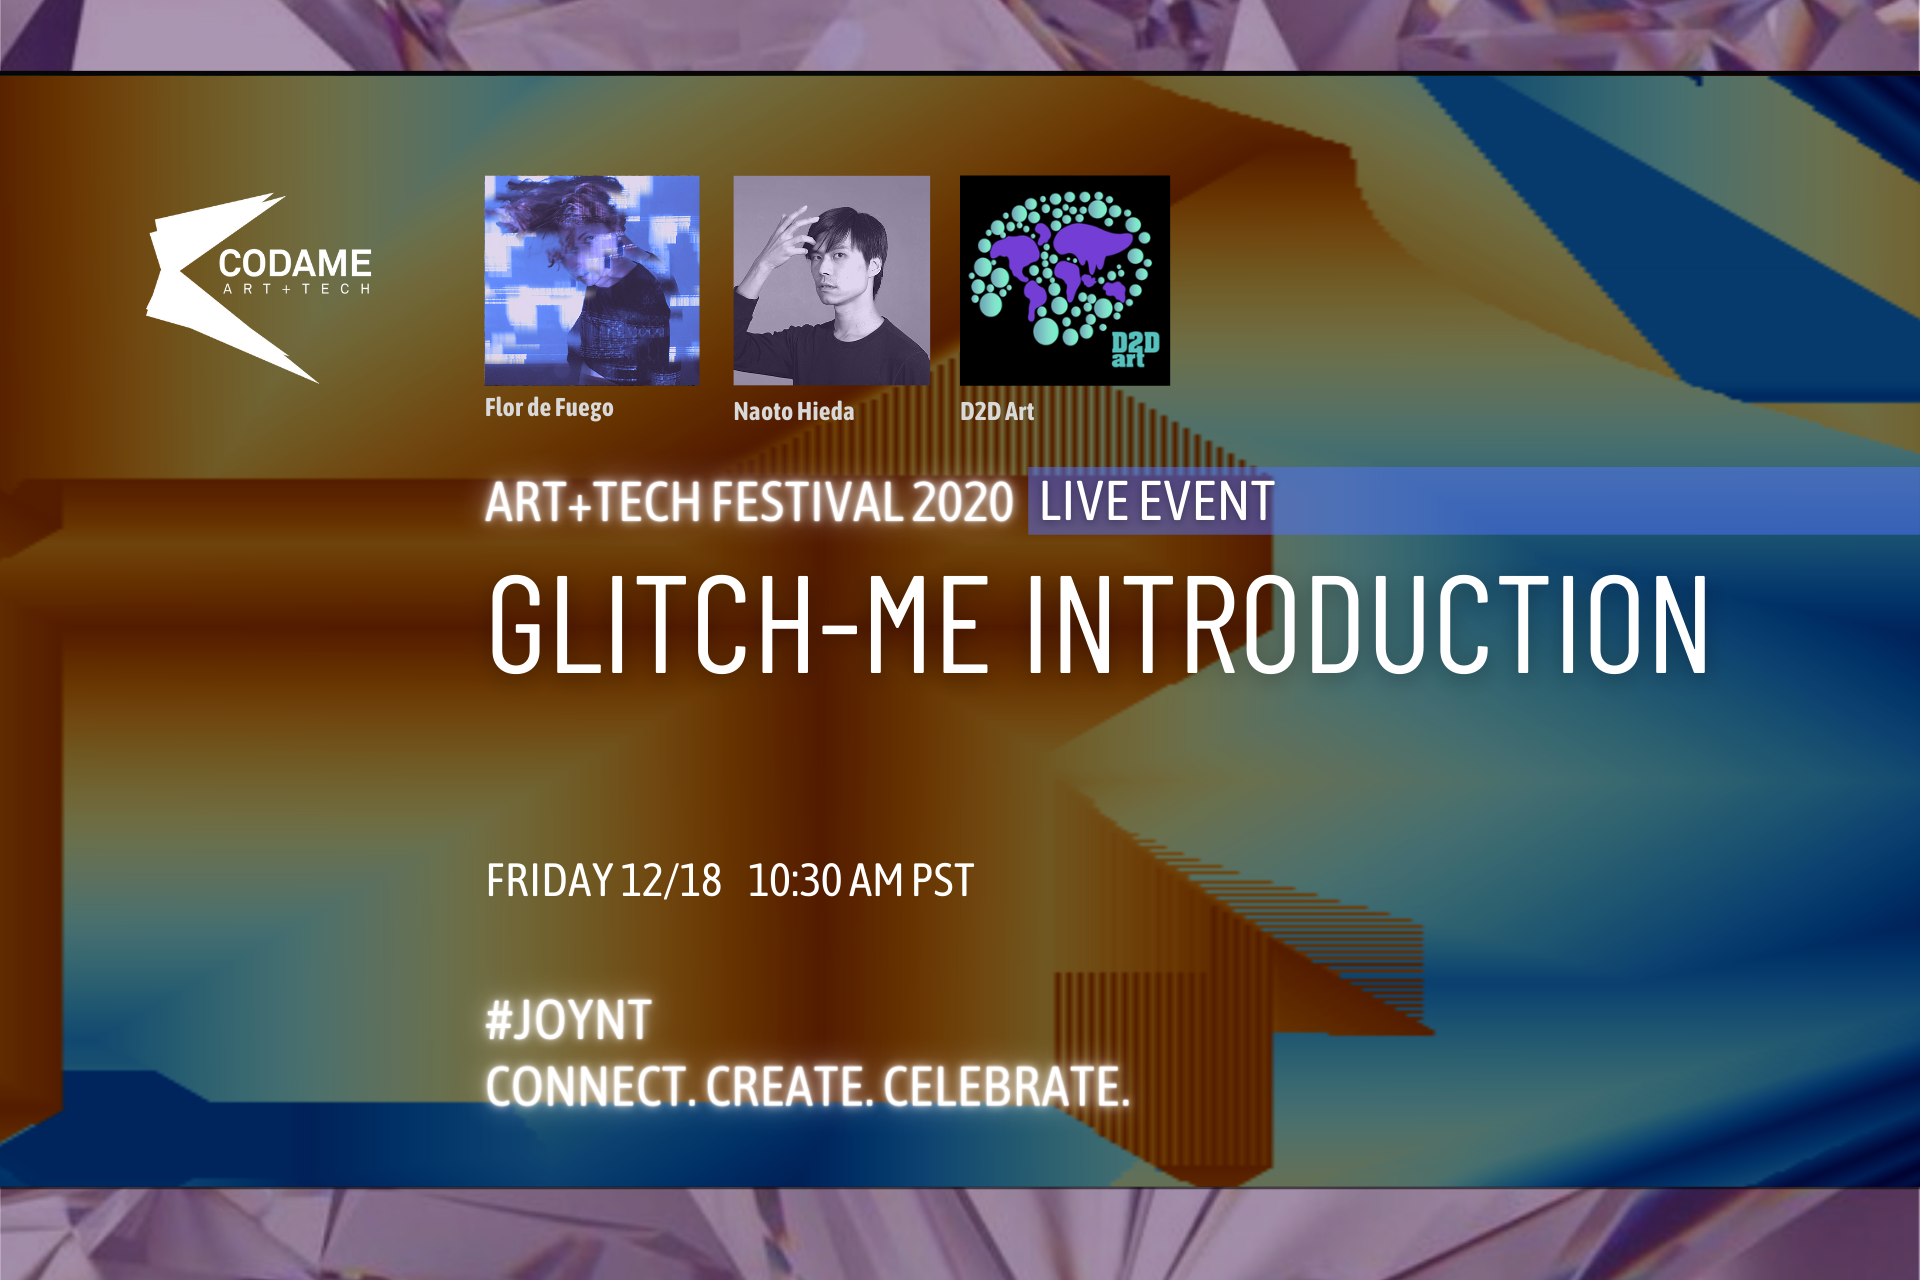 Glitch-me Introduction